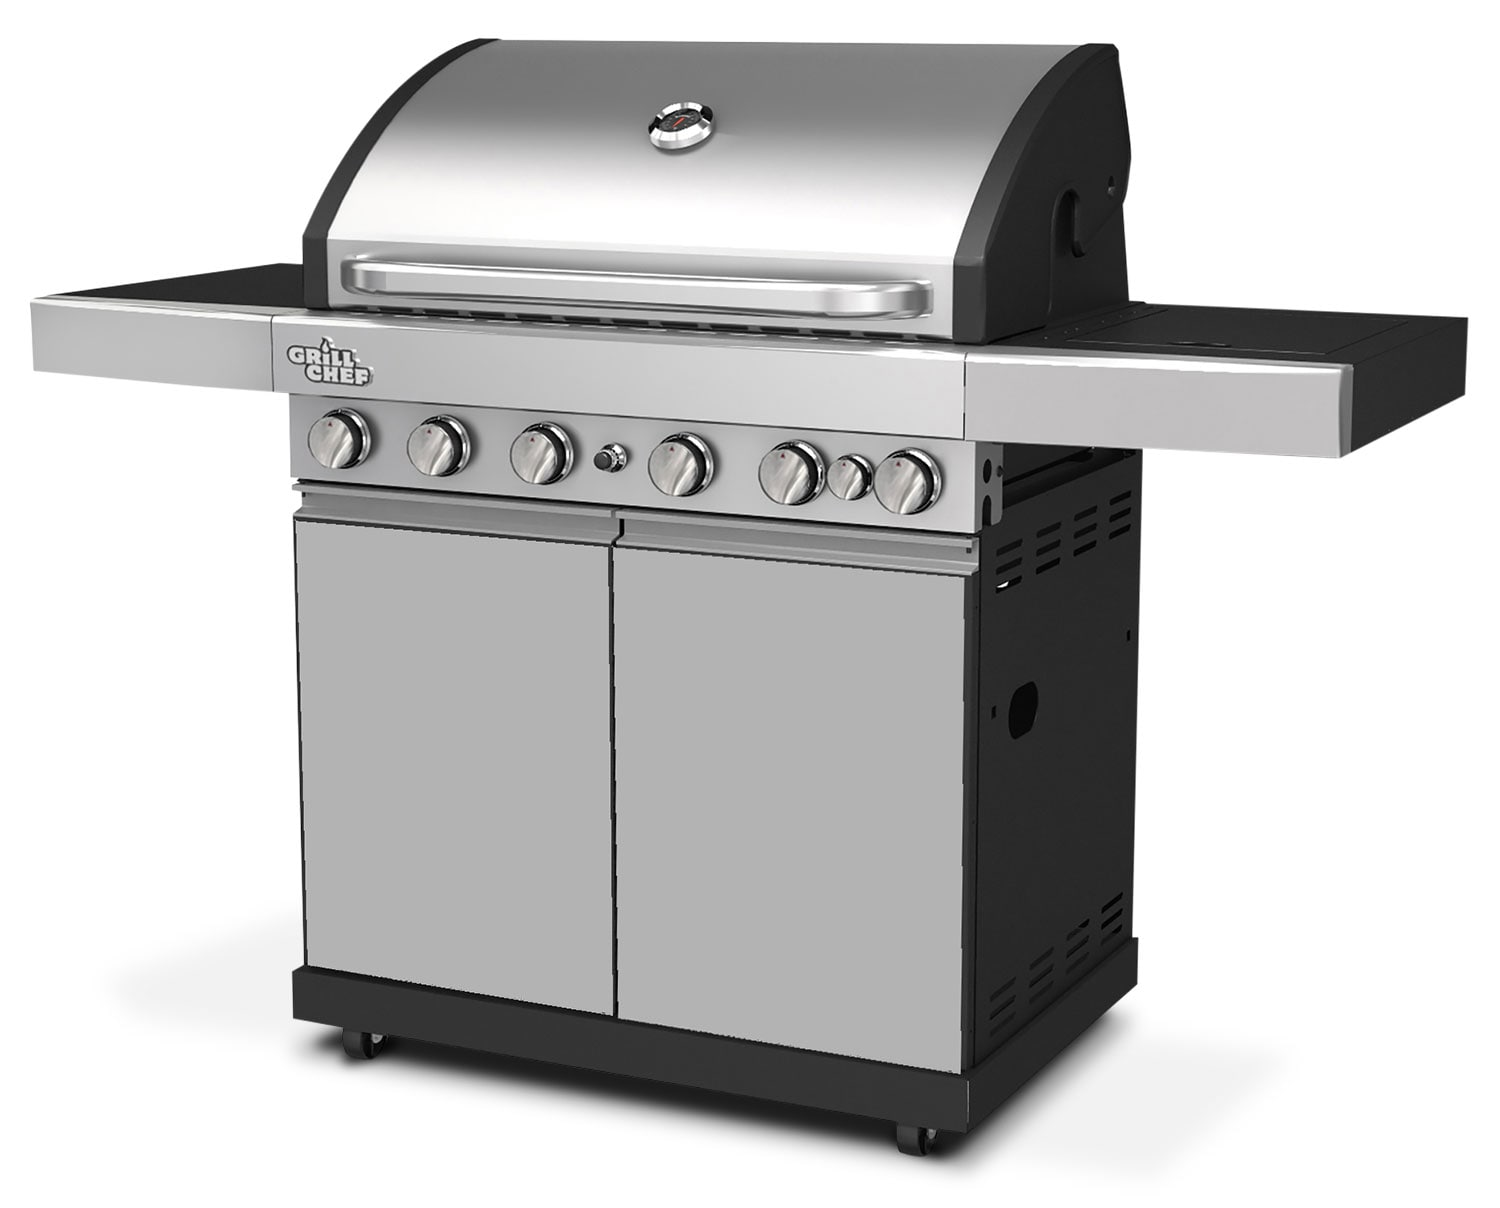 Grill Chef 70,500 BTU Dual-Fuel Barbeque